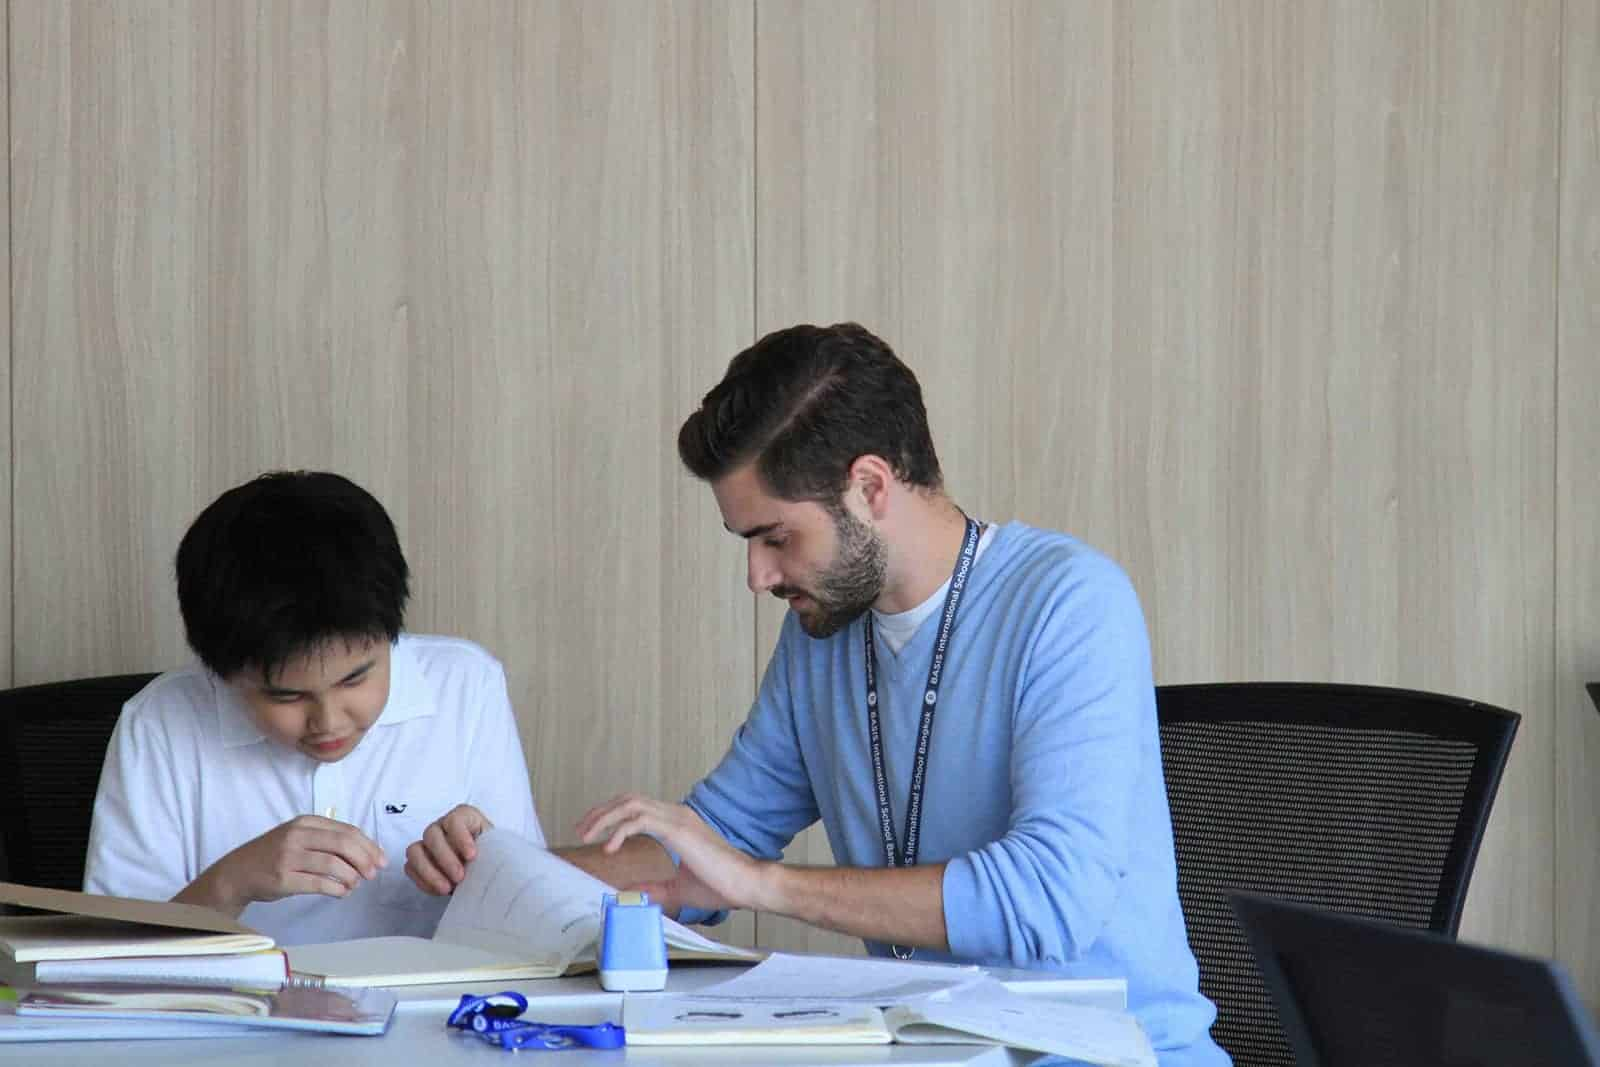 Teacher and Student Studying